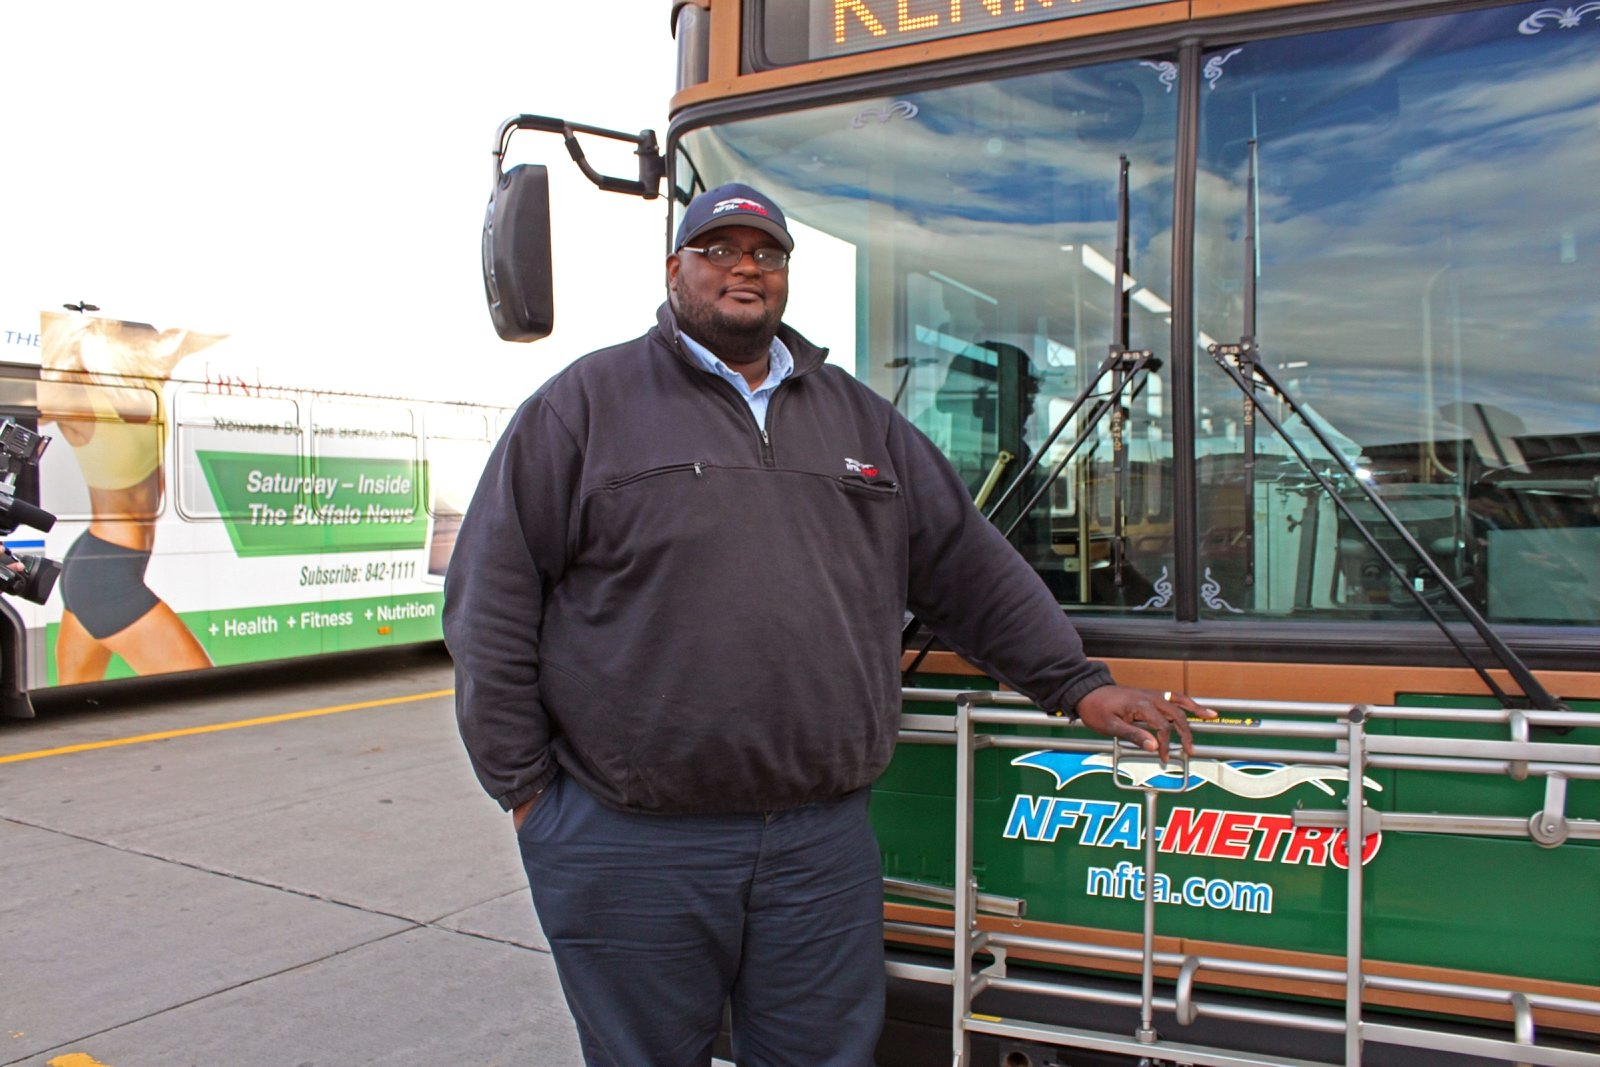 Driver Darnell J. Barton stopped his bus on an overpass and rescued a despondent woman who had planned to end her life.